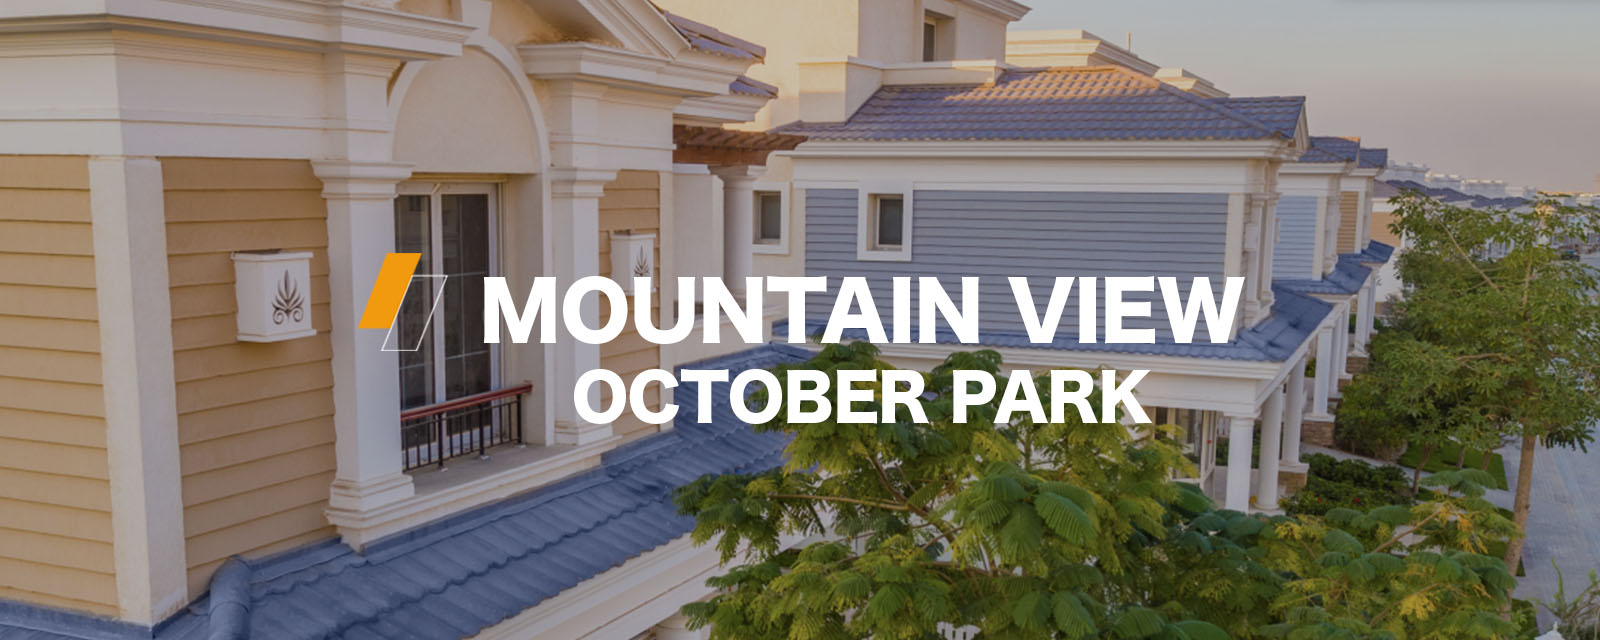 Mountain View October Park by Mountain View-featured-1